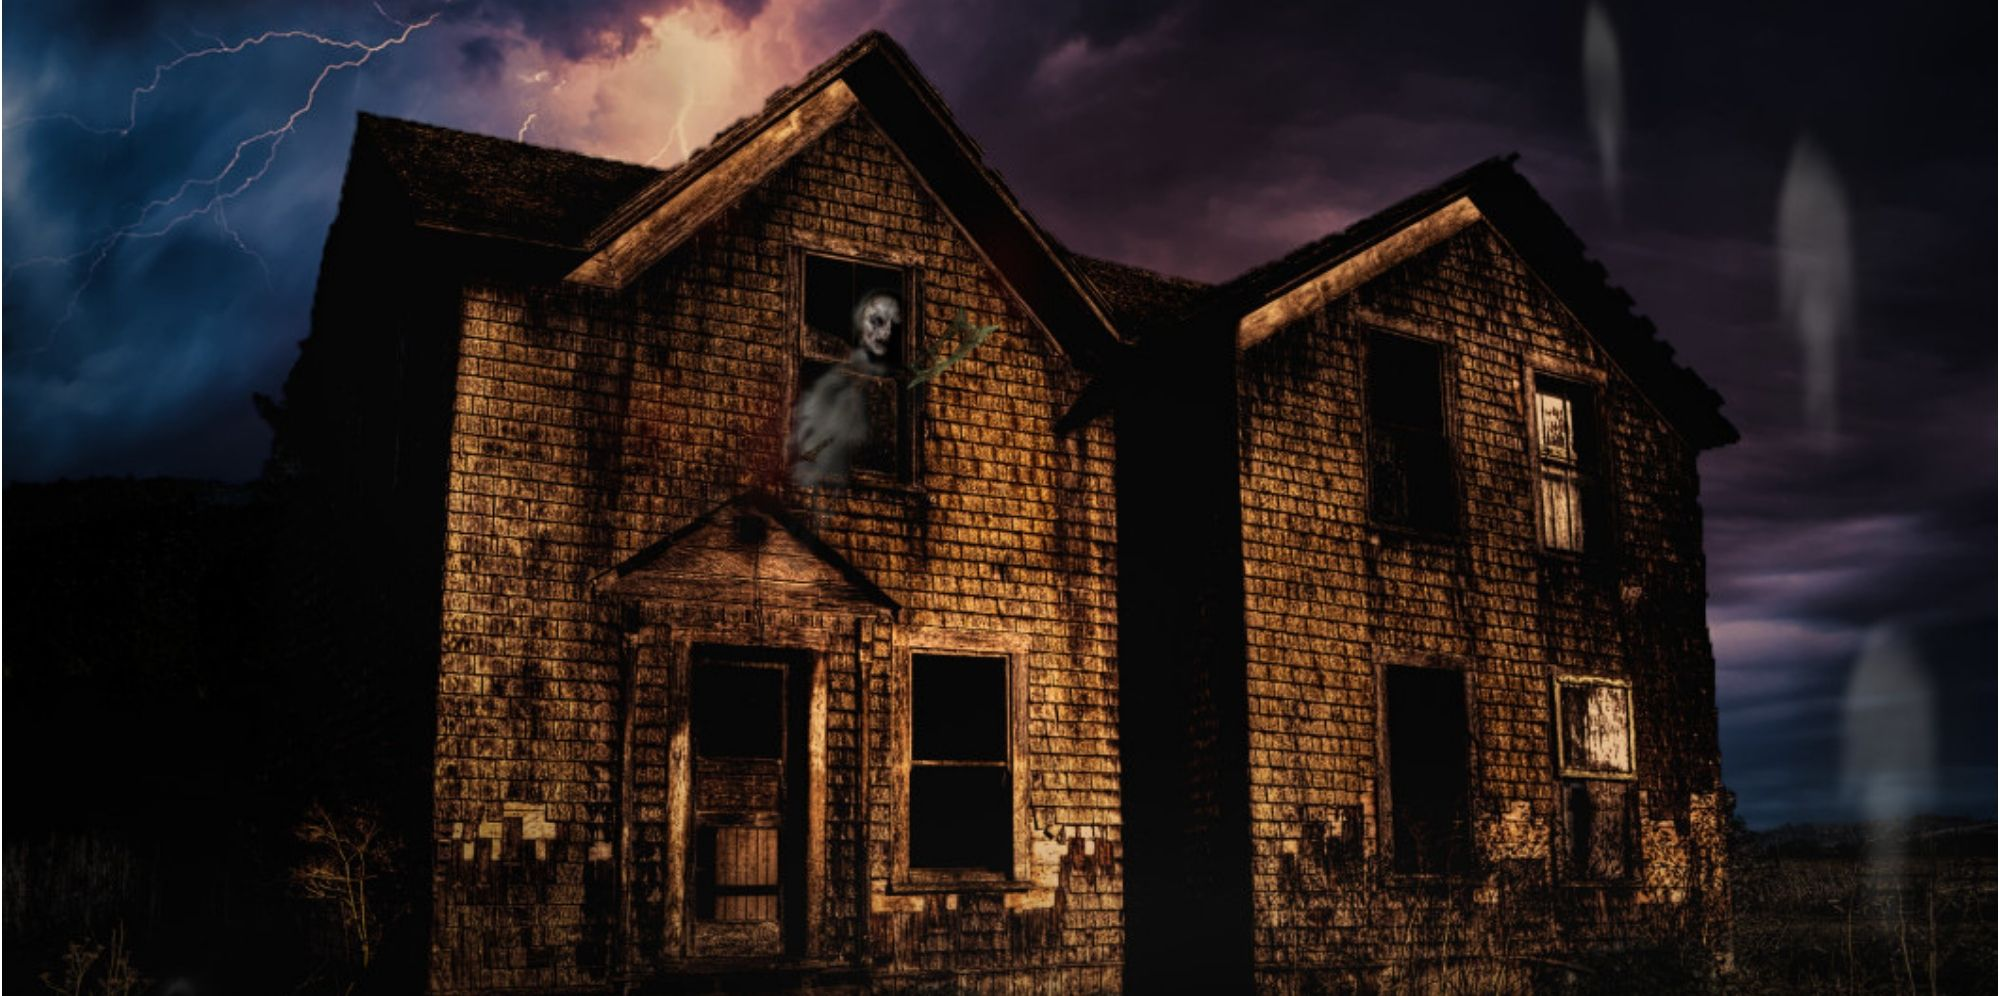 Halloween 2018 10 Attractions To Scare You In Los Angeles Eventbrite In 2020 Haunted Attractions Halloween 2018 Los Angeles Area